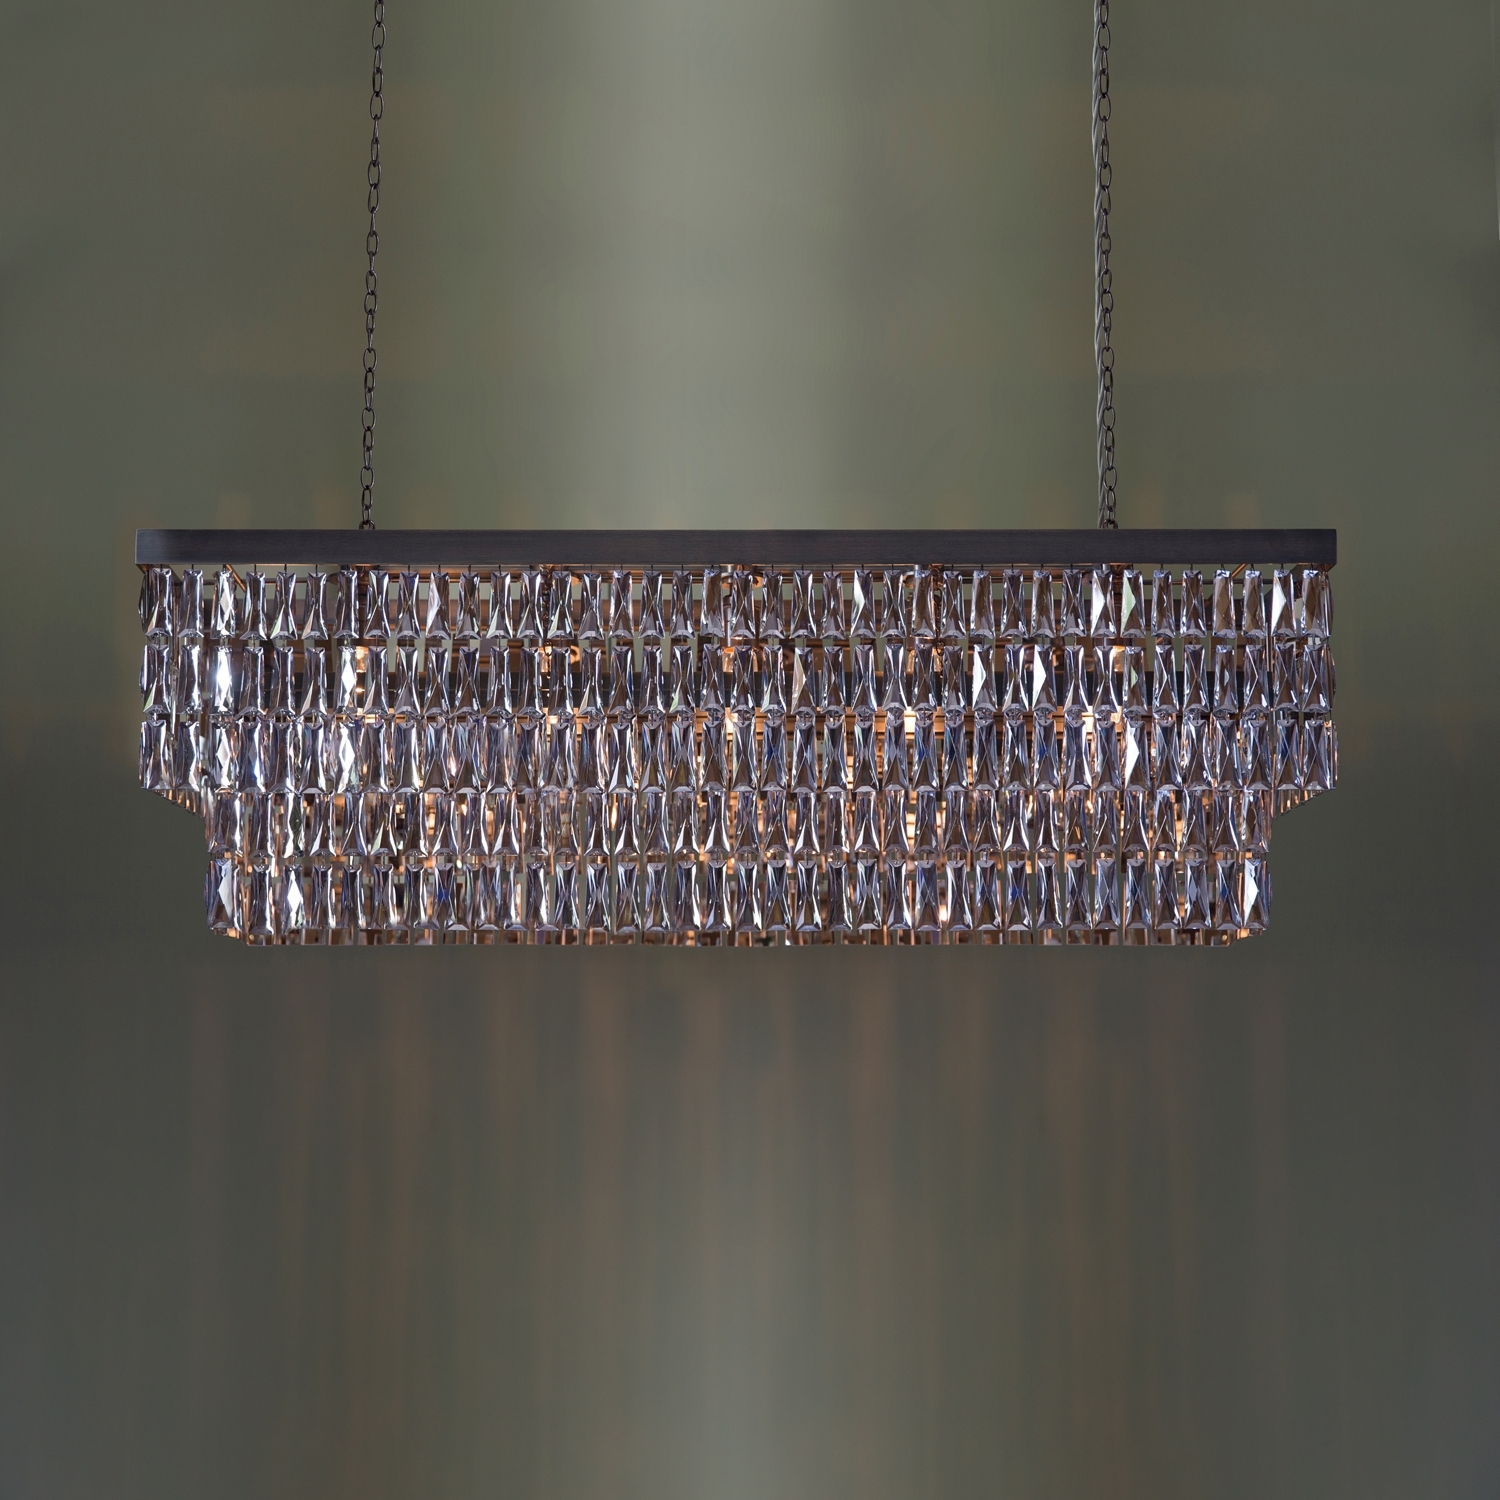 Mirrored Crystal Rectangular Chandelier – Tigermoth Lighting For 2019 Mirrored Chandelier (View 15 of 20)